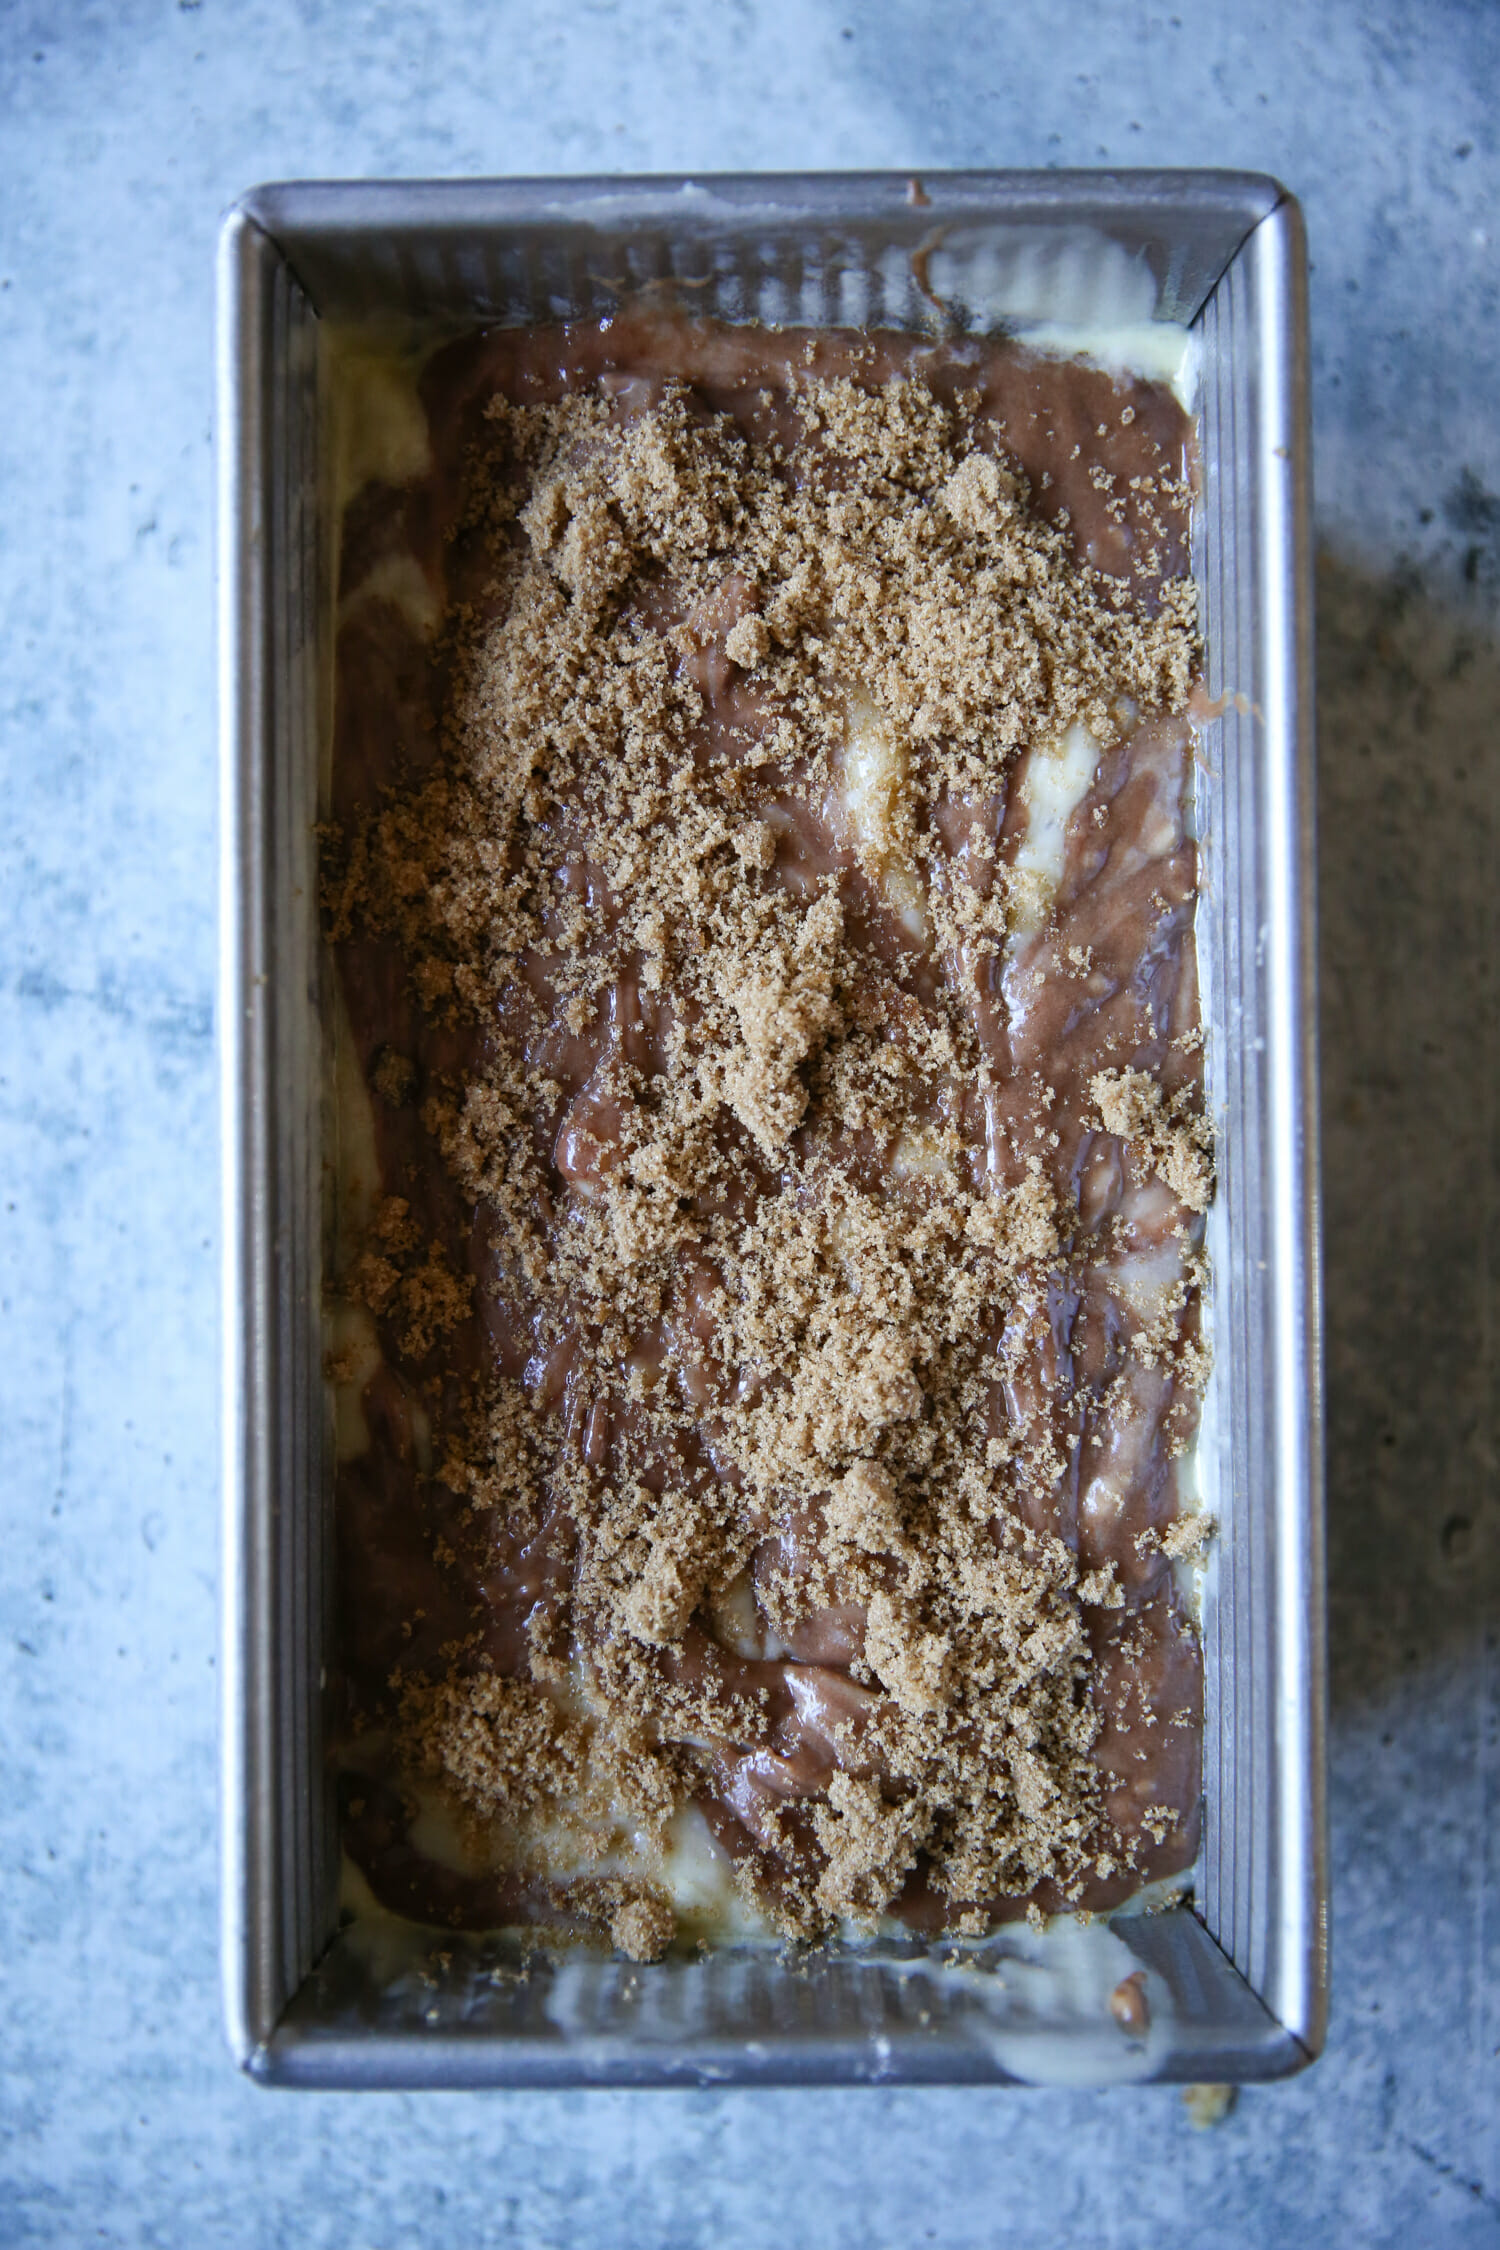 sprinkling brown sugar on chocolate swirled banana bread